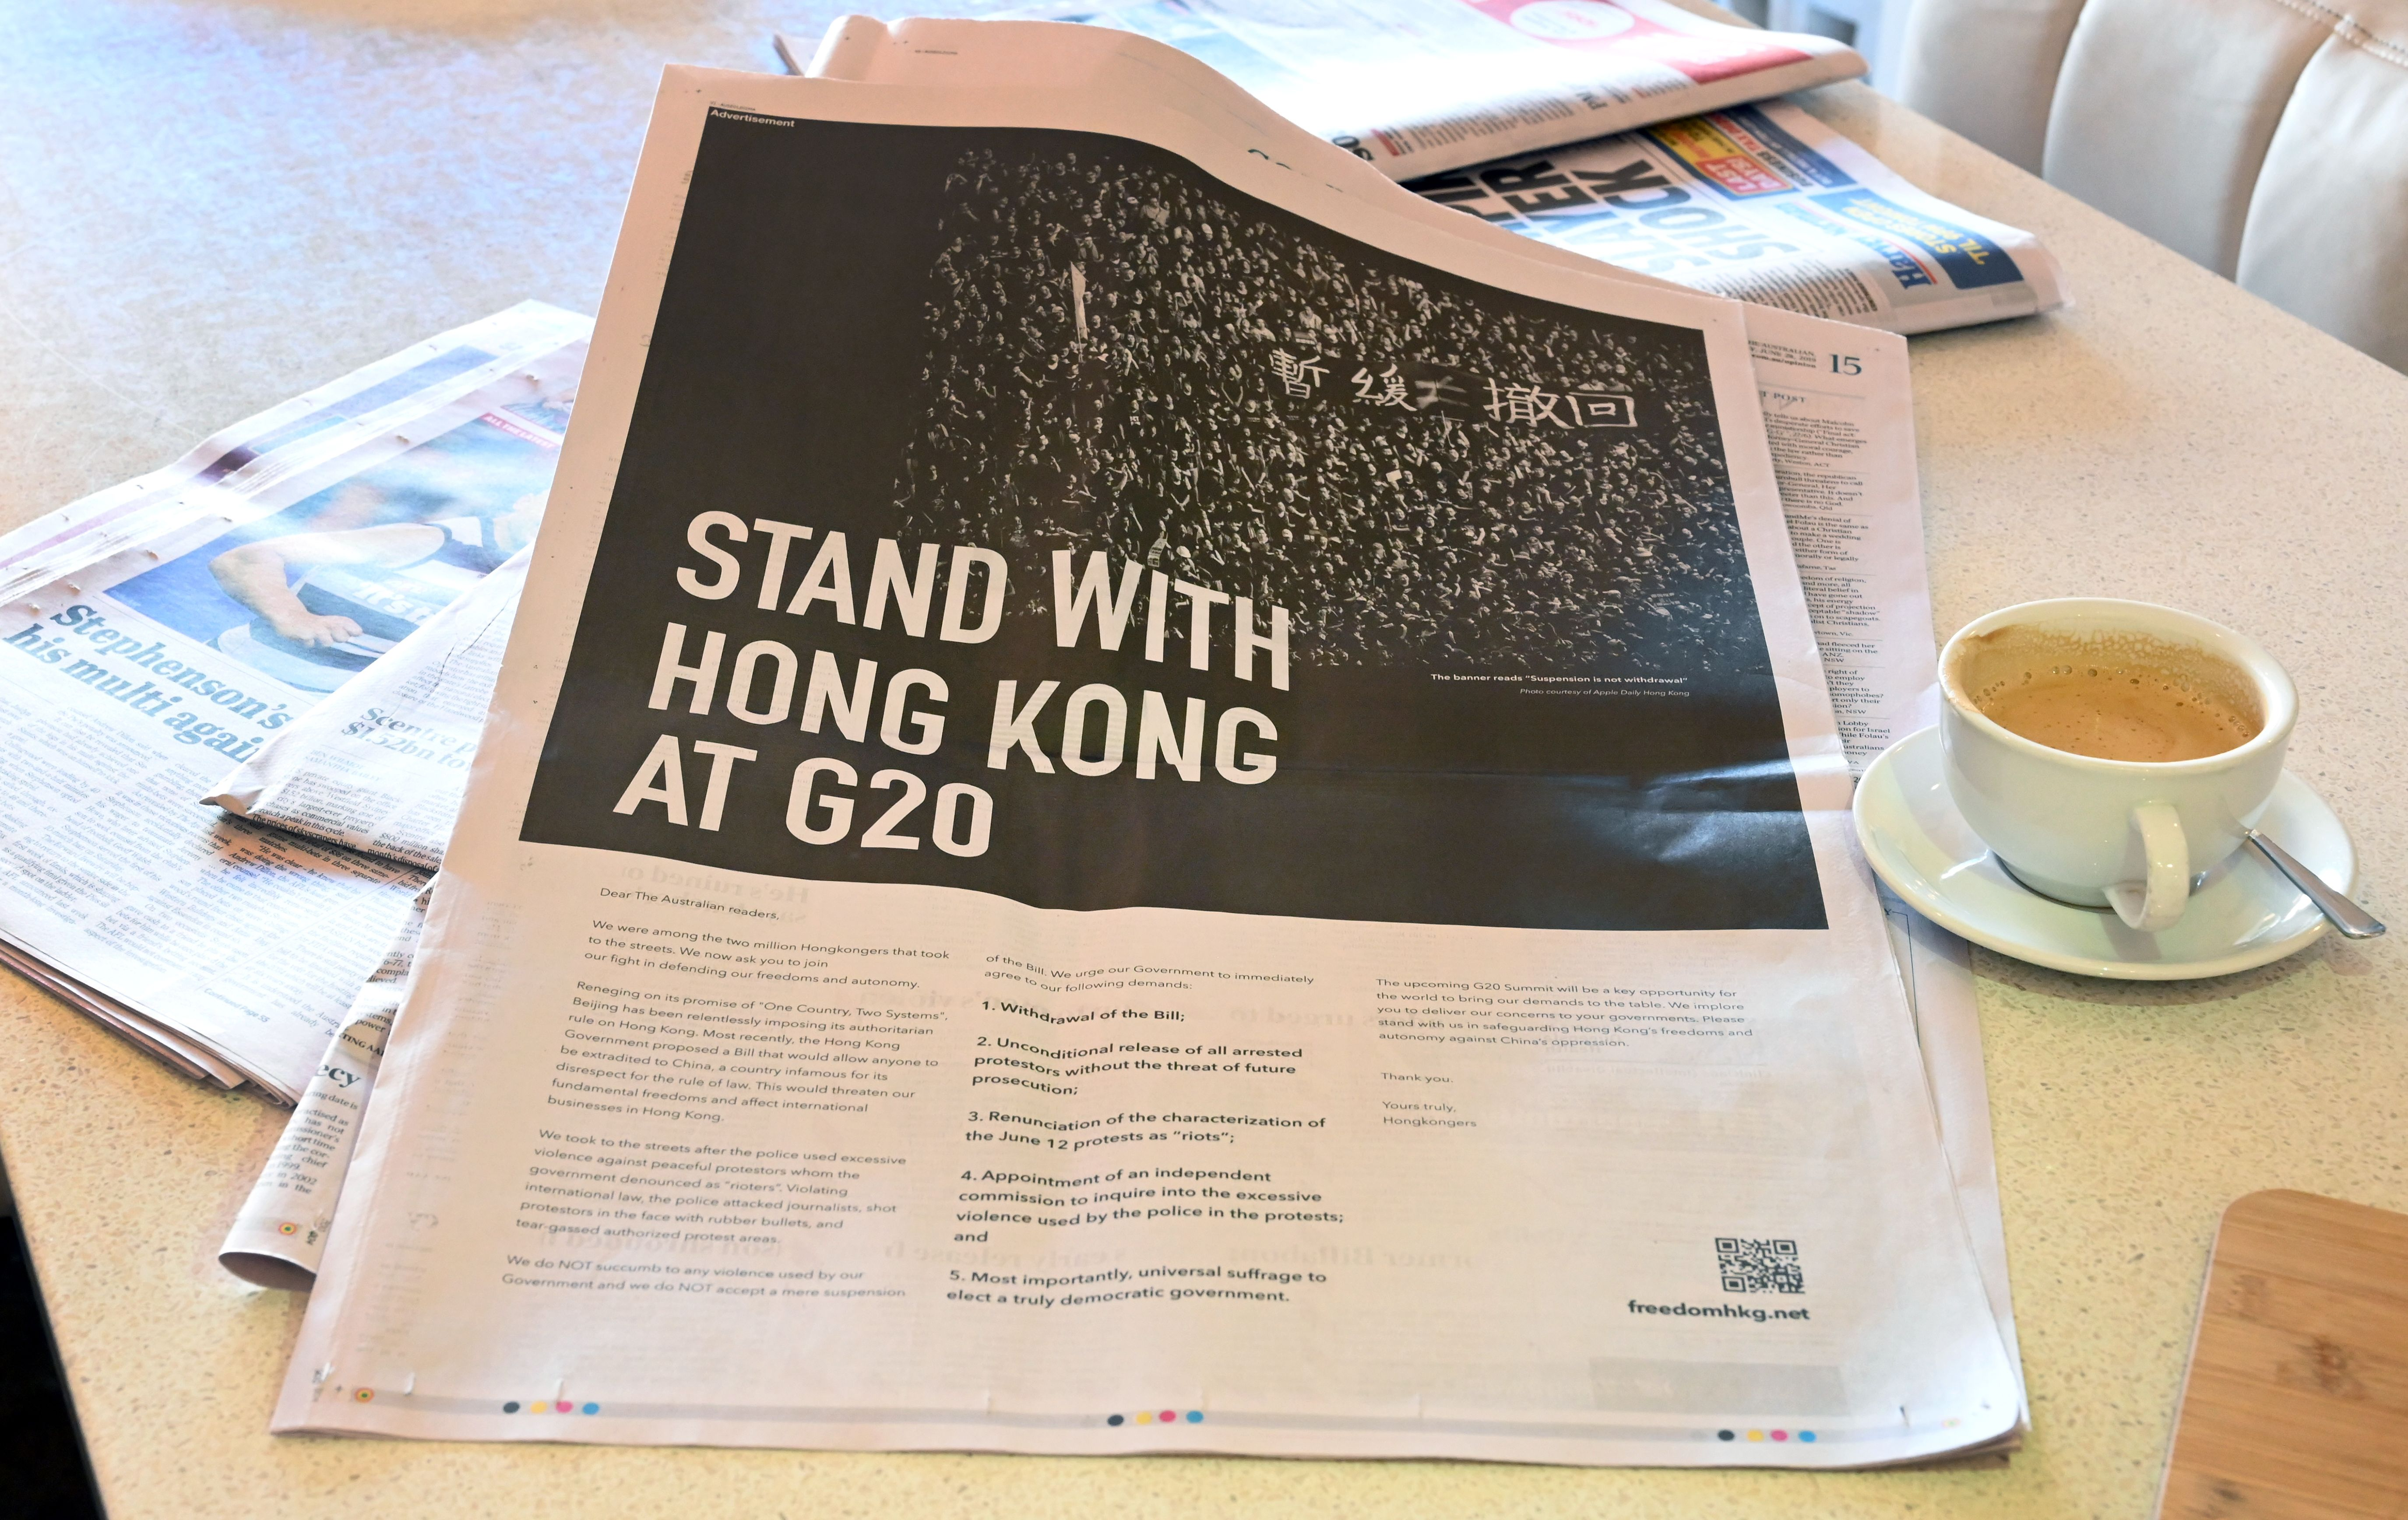 An ad in the national daily newspaper The Australian on June 28, 2019.